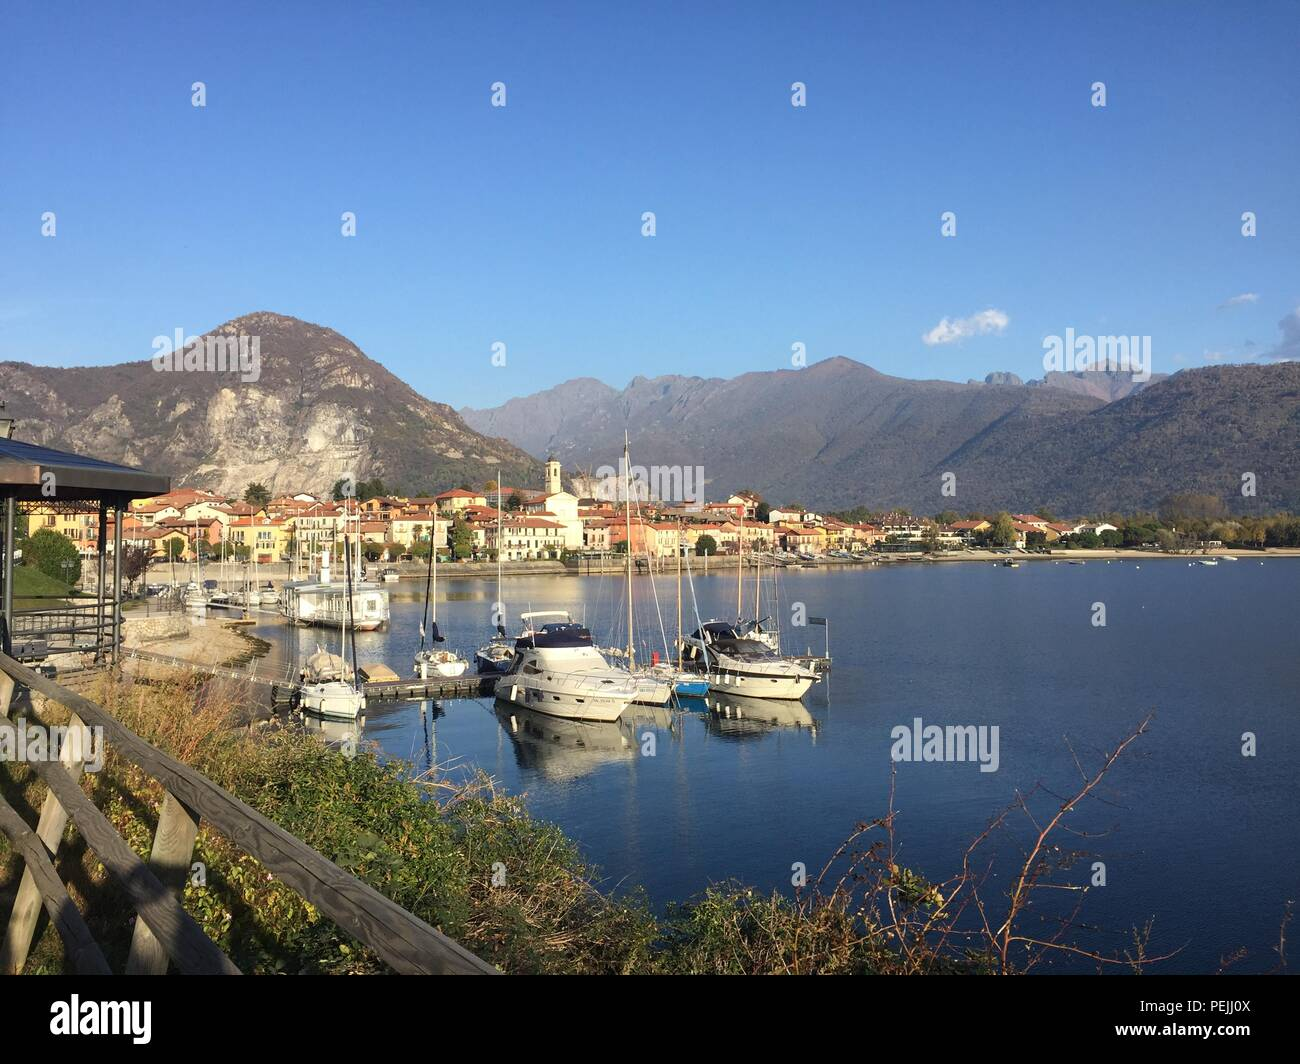 Am See in Italien - Stock Image